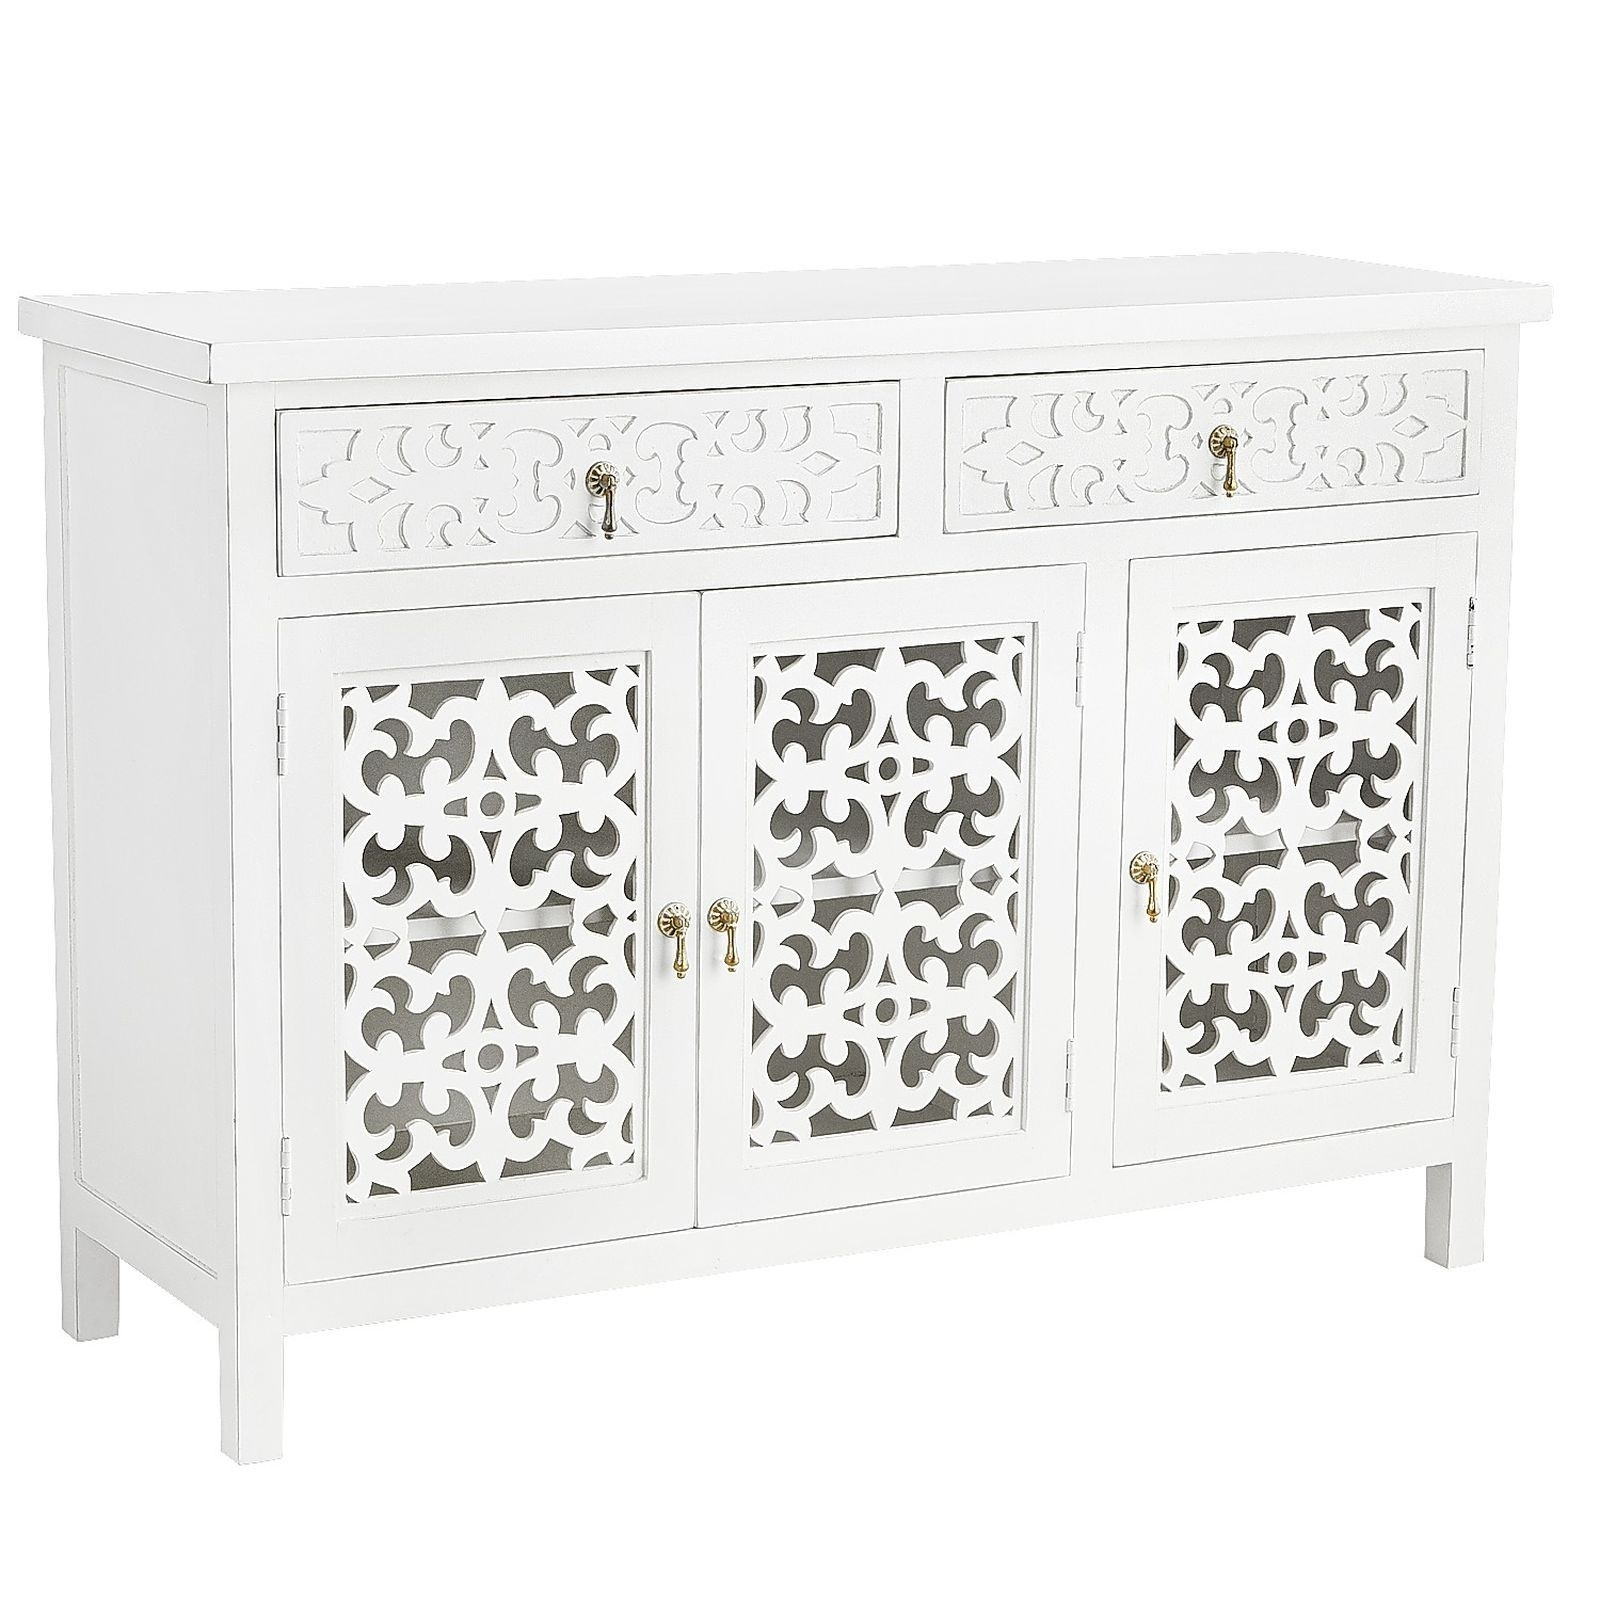 Our Landyn Tv Stand Proves A Media Cabinet Needn't Be Masculine throughout Mandara 3-Drawer 2-Door Sideboards (Image 20 of 30)